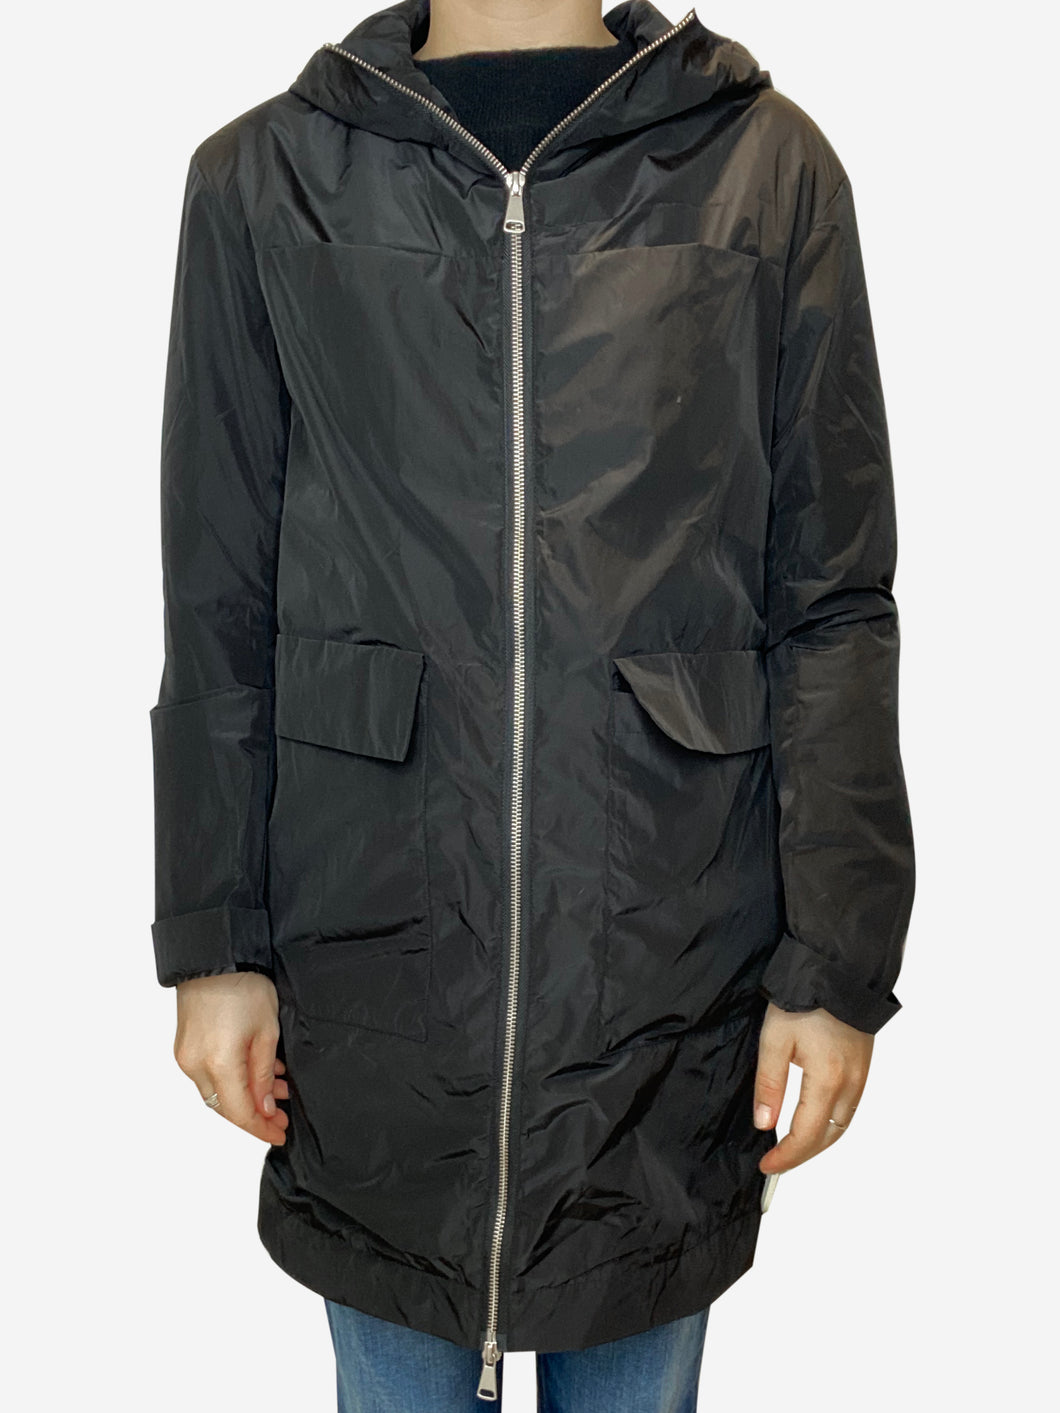 Black lightweight hooded raincoat - size S